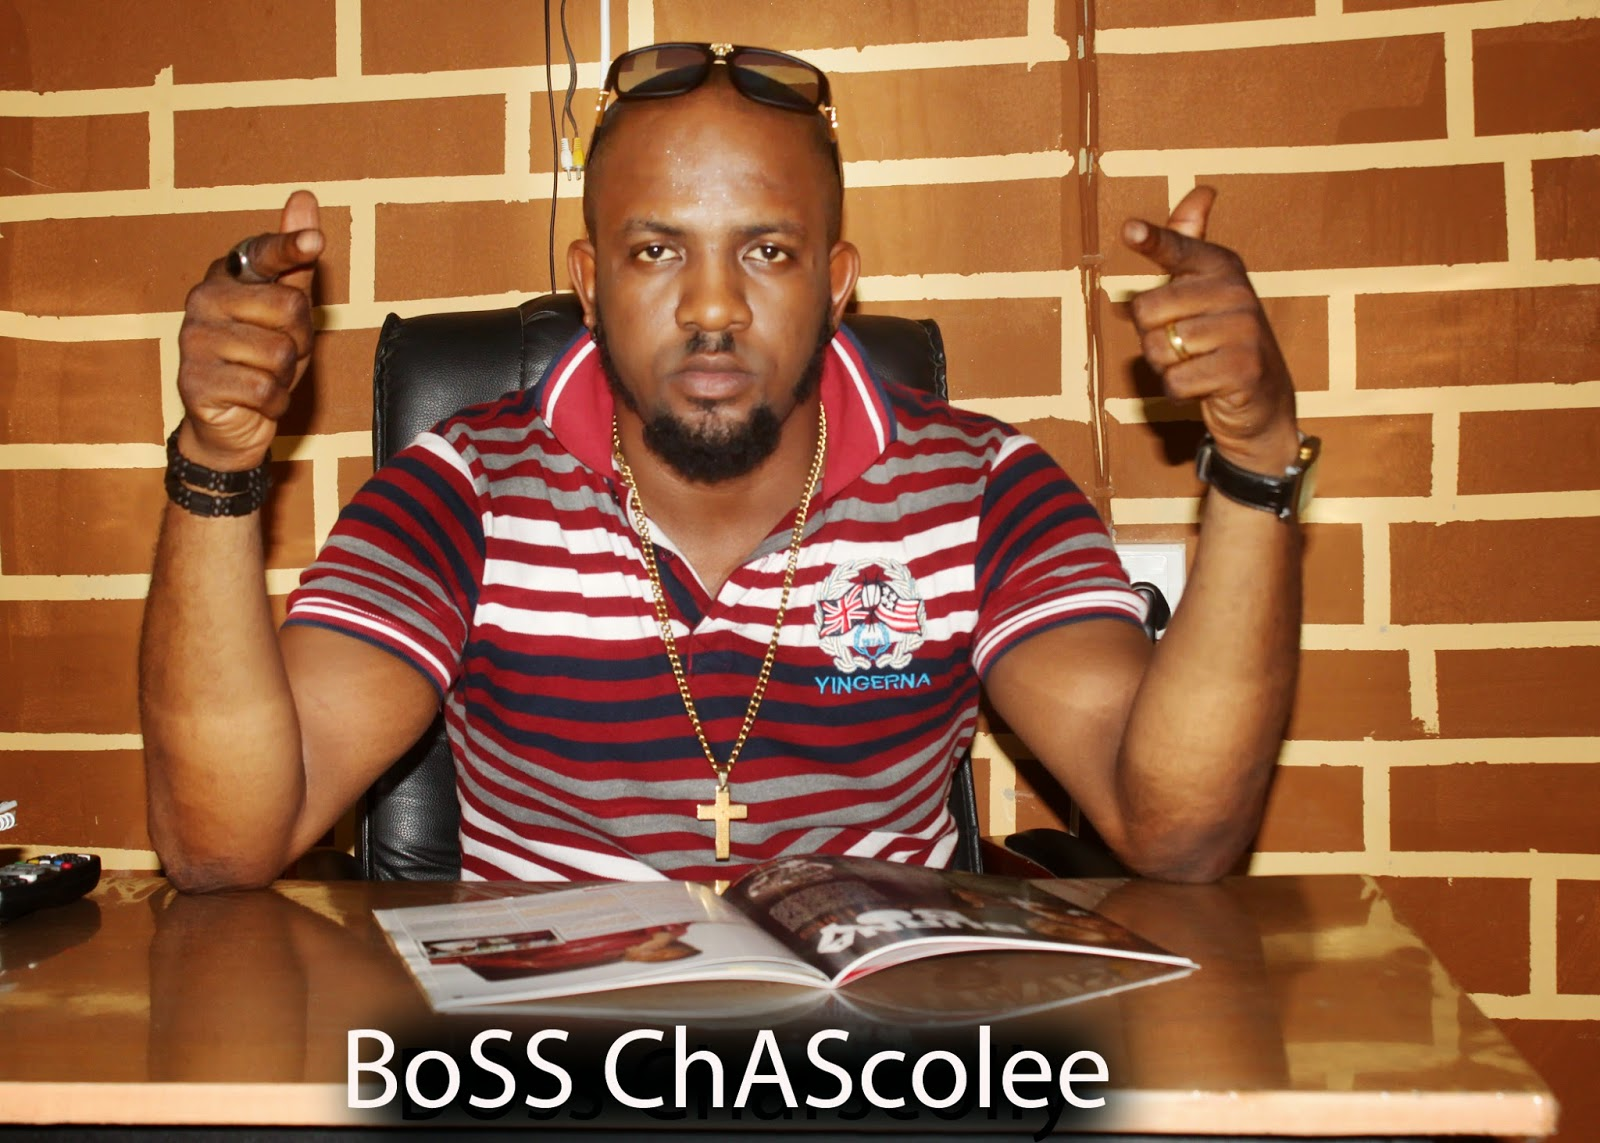 IMG 6400 @DjChascolee Opens New Office And Dj Studio (BOOK Dj Chascolee)